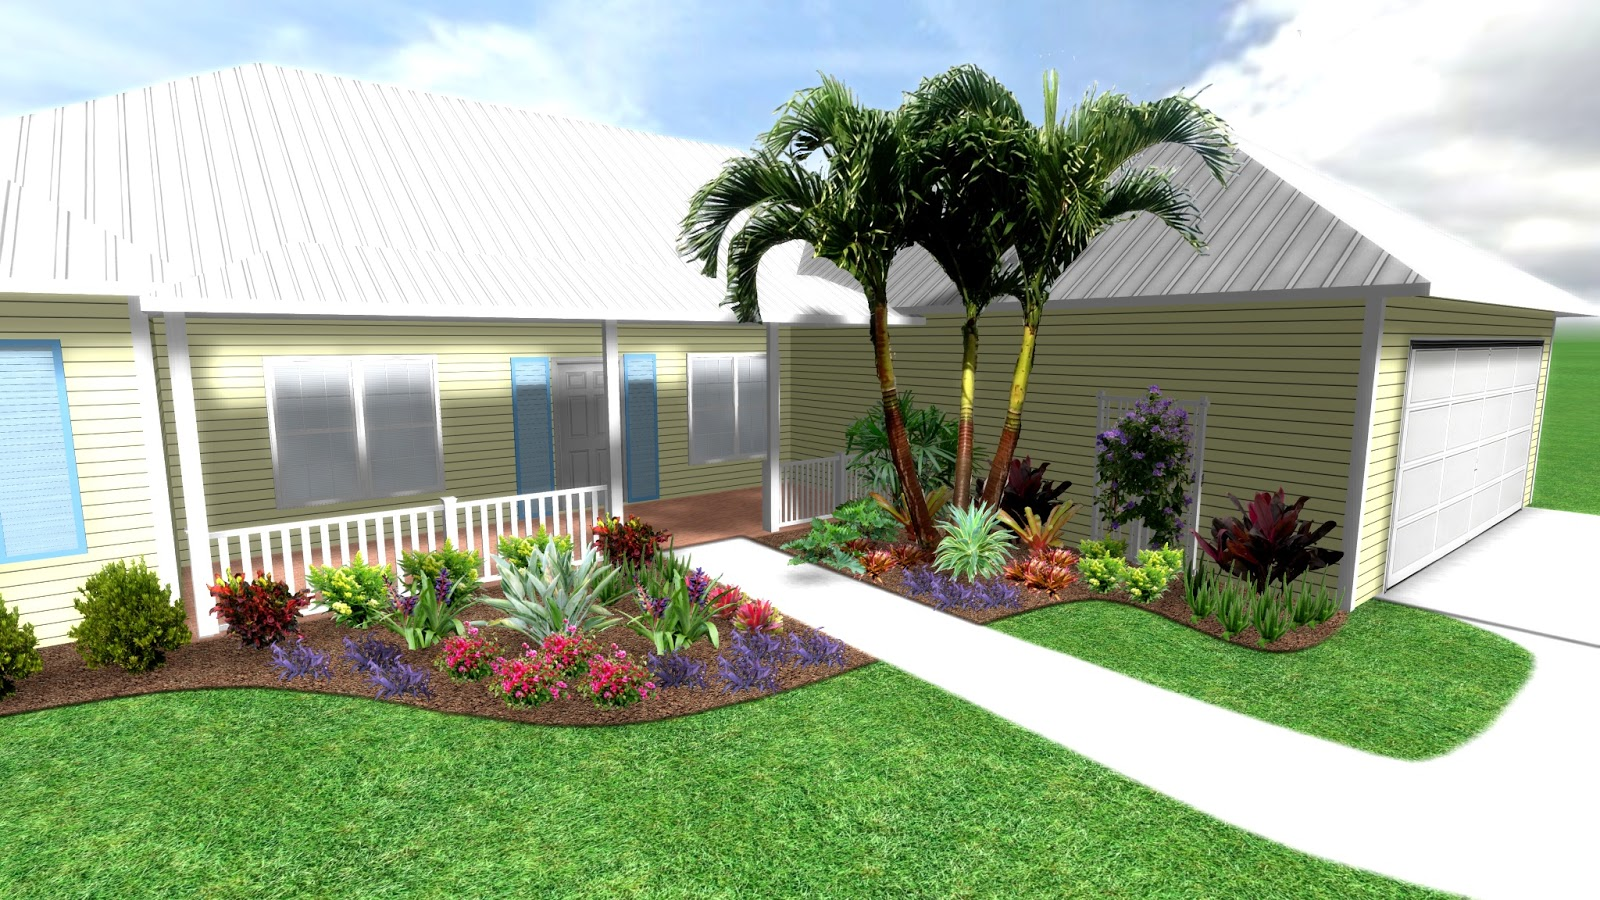 Landscaping Front Yard And Driveway | Joy Studio Design ... on Tropical Landscaping Ideas For Small Yards id=86961